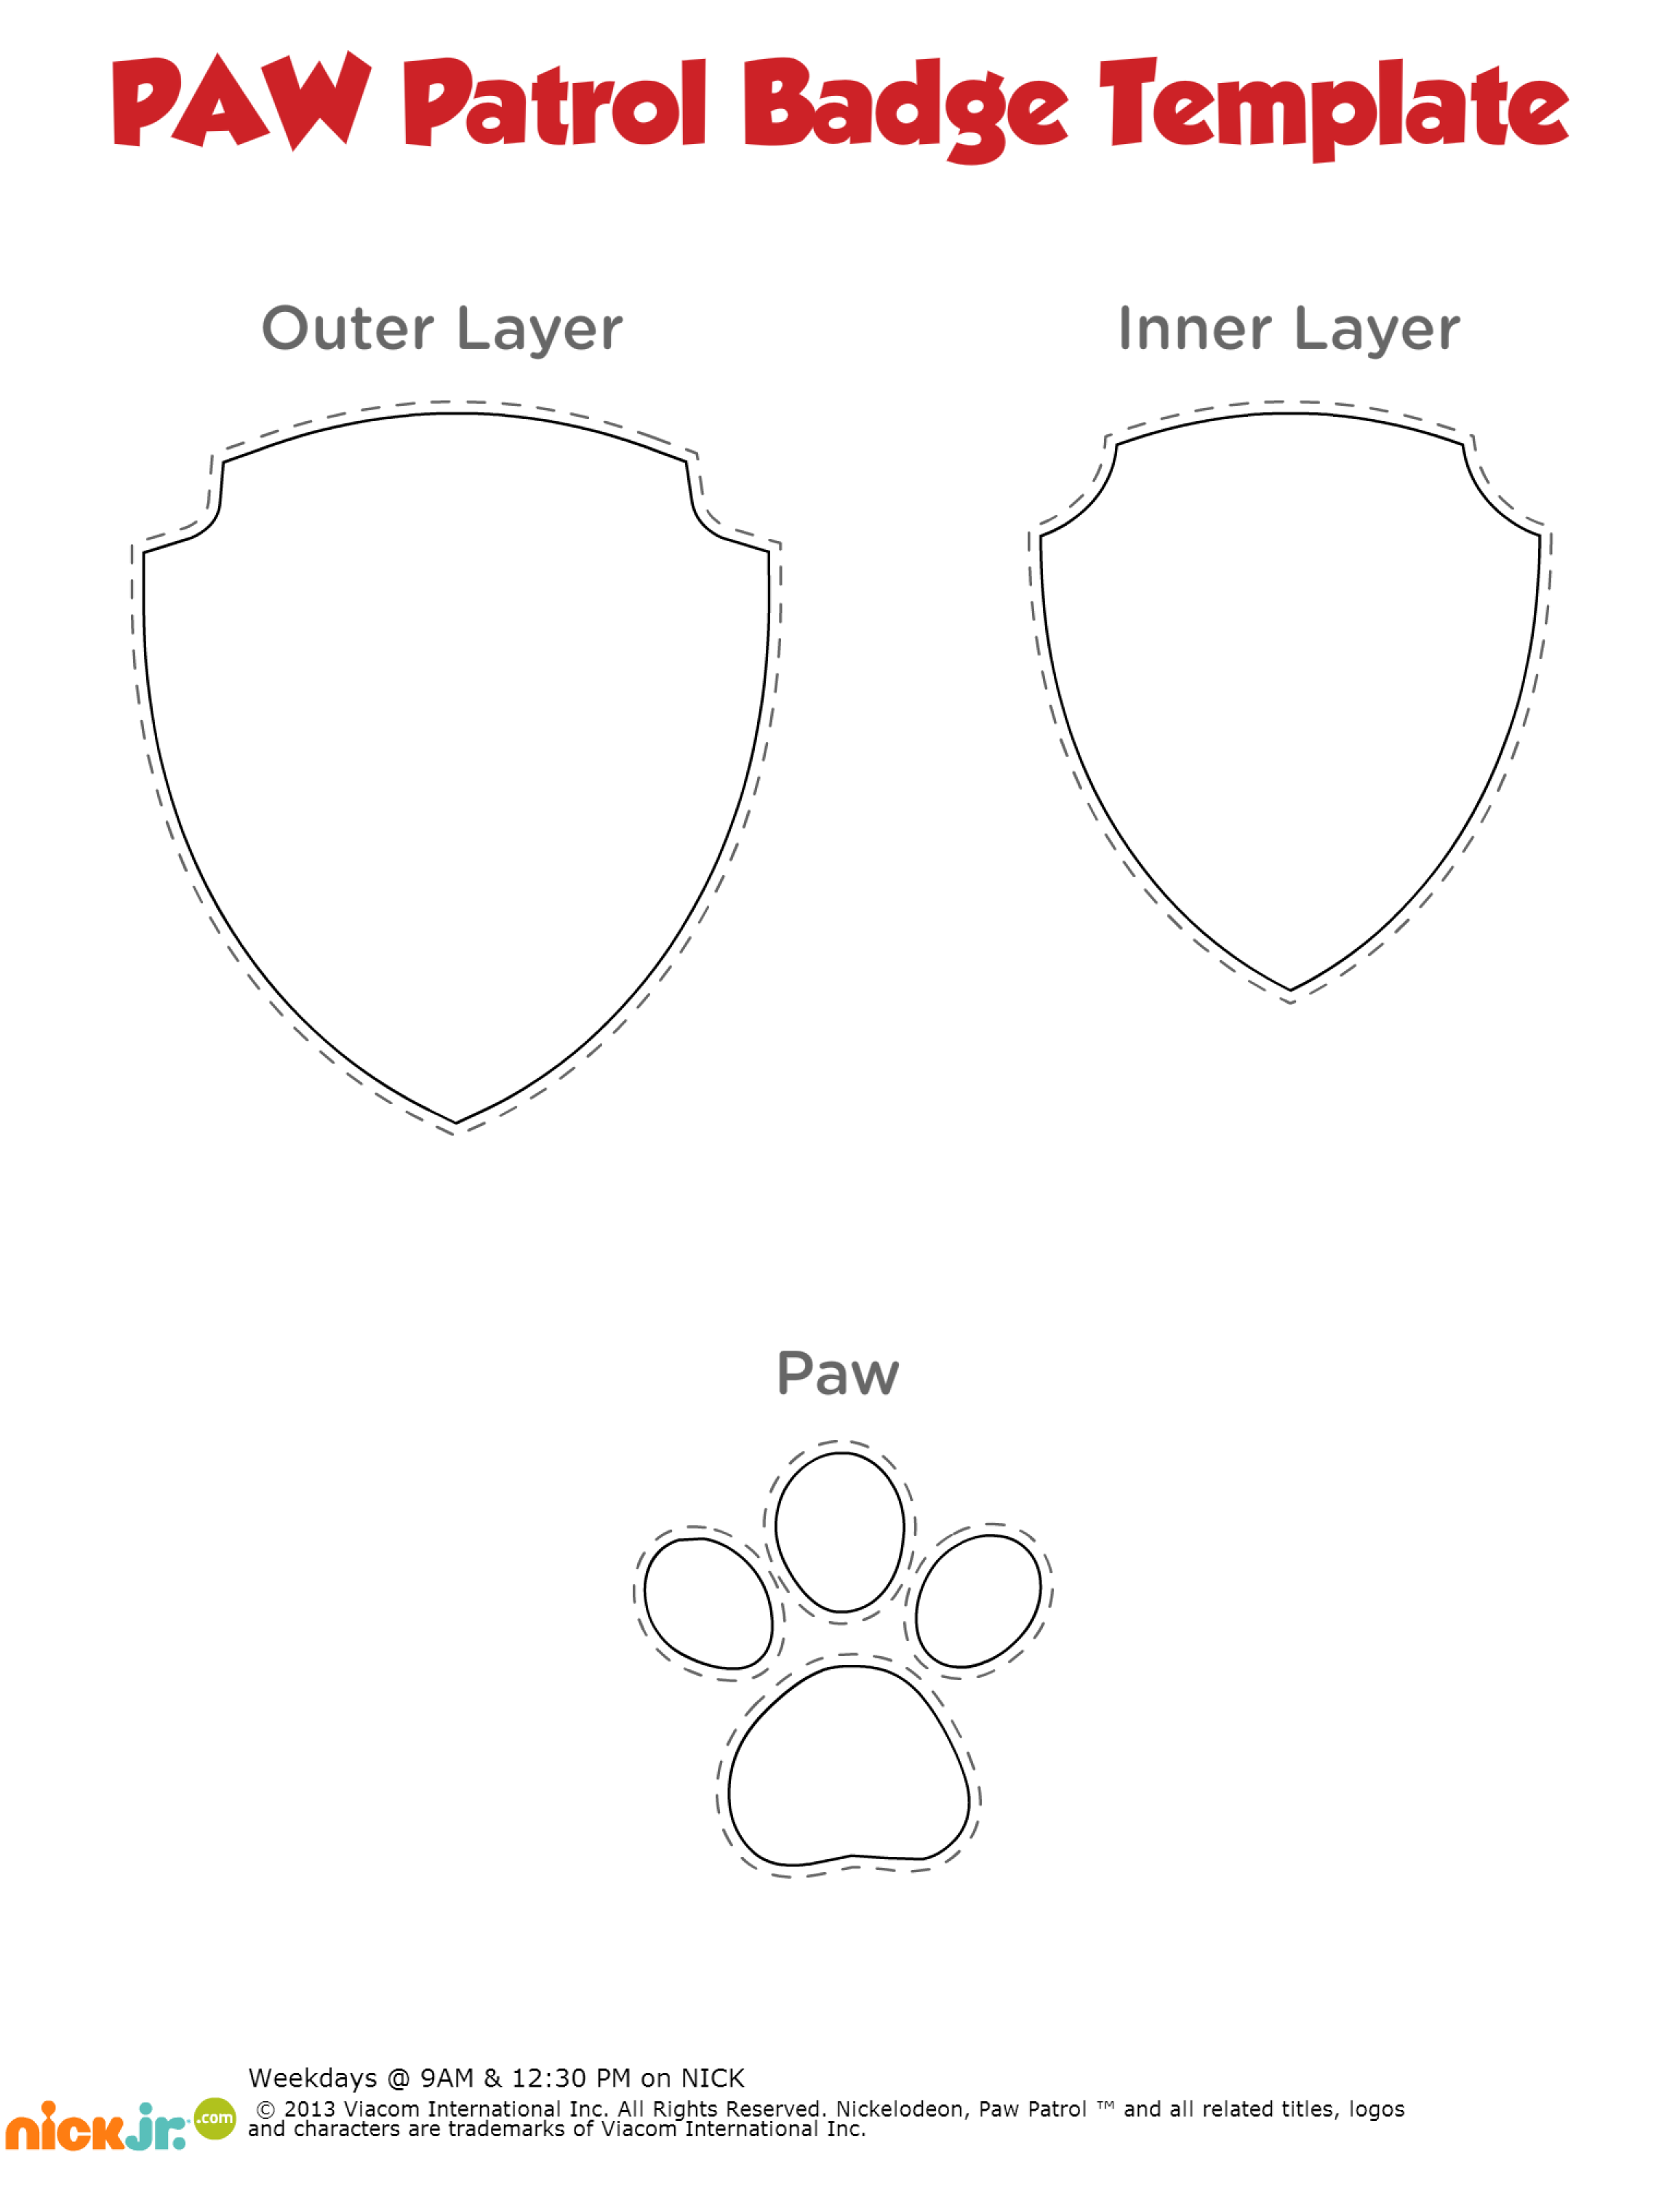 A Free Paw Patrol Badge Printable Template Use To Make One Out Of Red Blue And Yellow